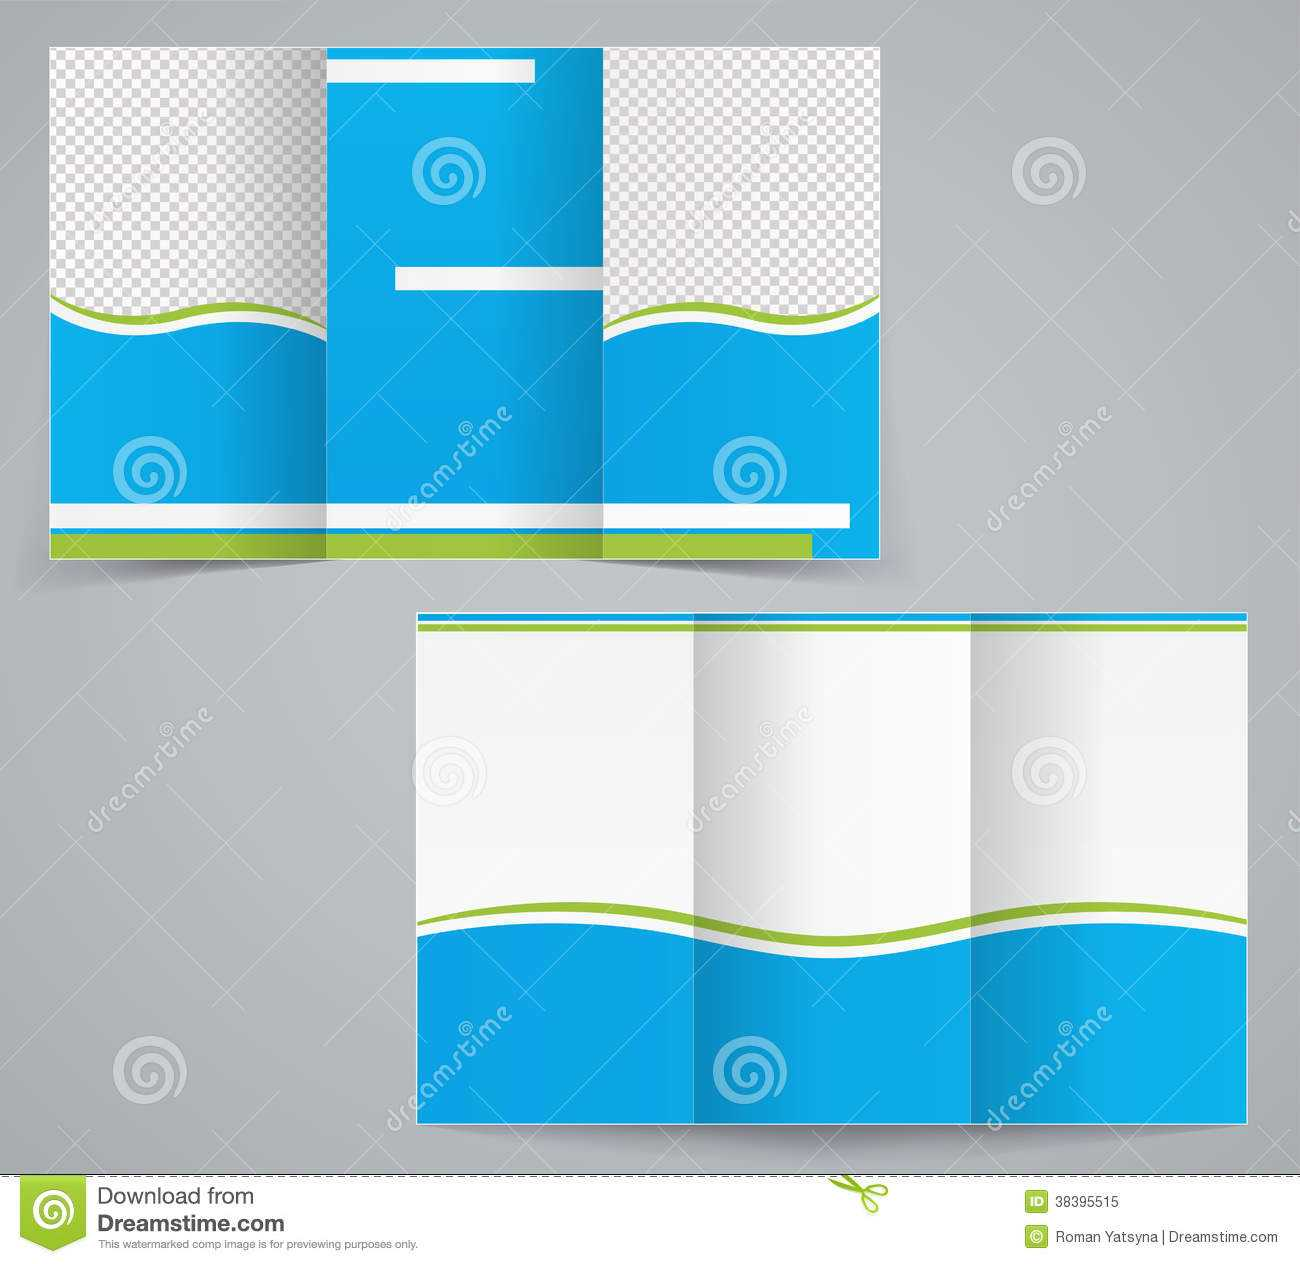 Tri Fold Business Brochure Template, Blue Design Stock In 6 Sided Brochure Template